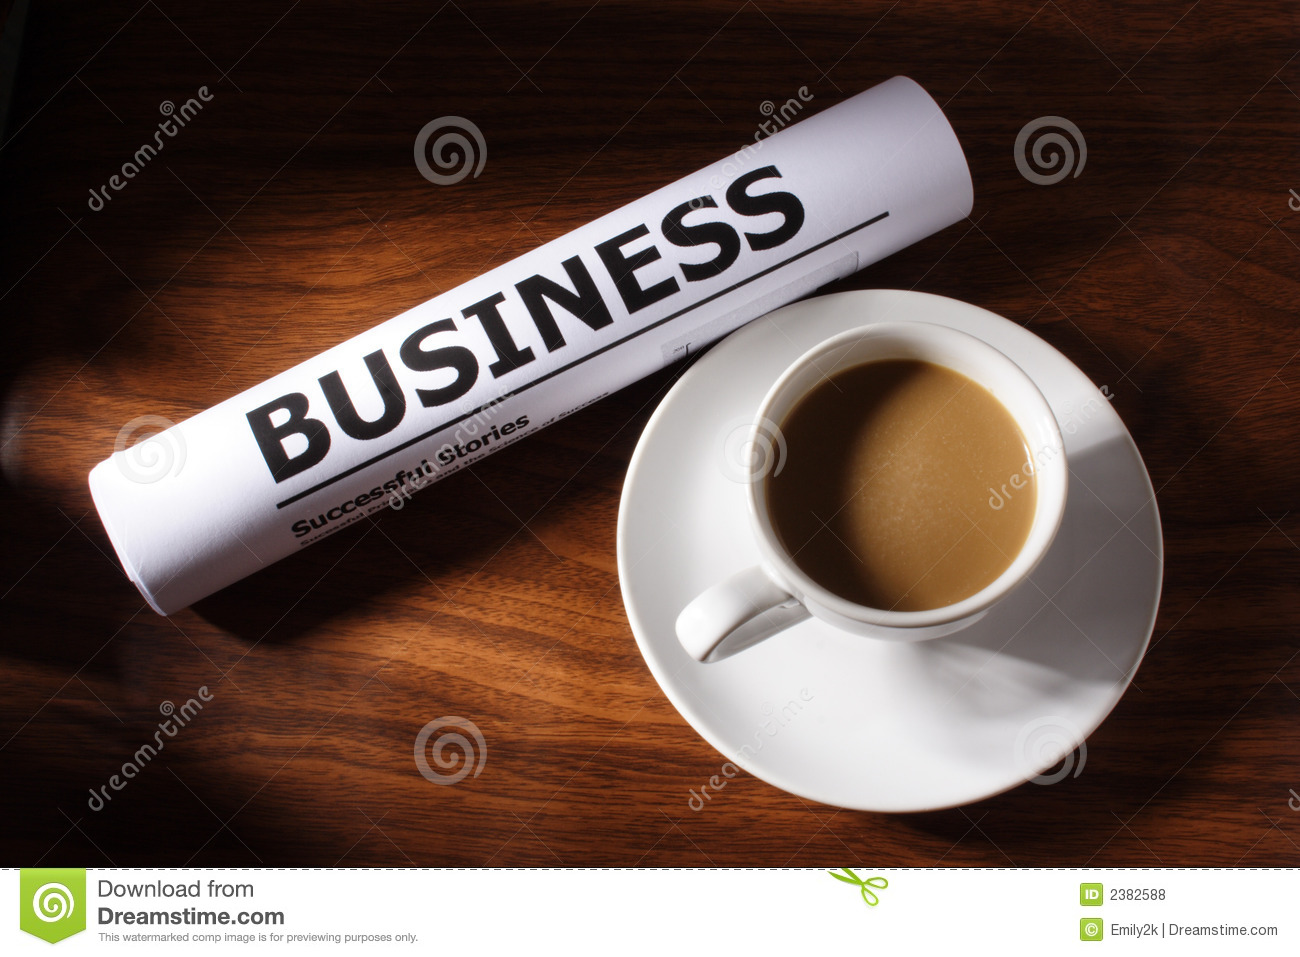 Coffee business file on table stock photo image 2382588 for Coffee business